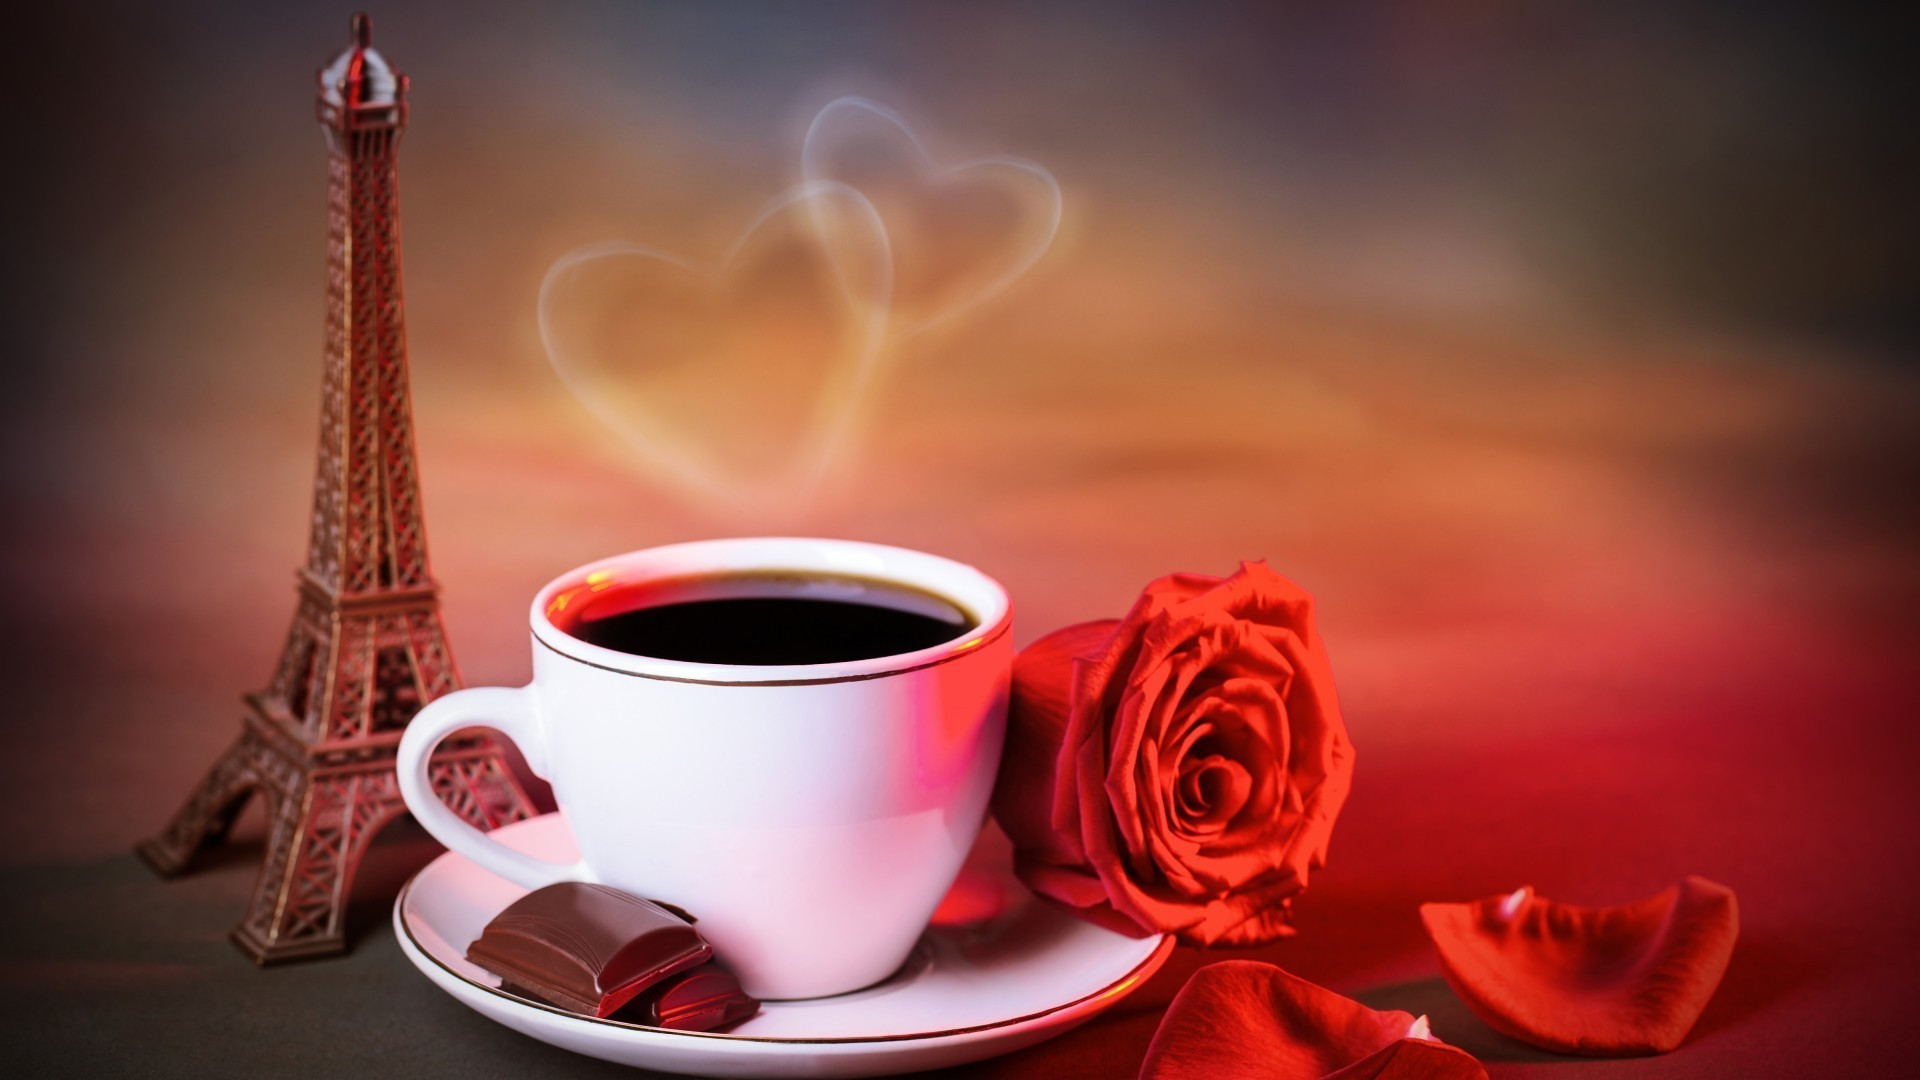 Coffee Lovers Love Hd Wallpapers: Coffee,rose,love,Paris. Android Wallpapers For Free